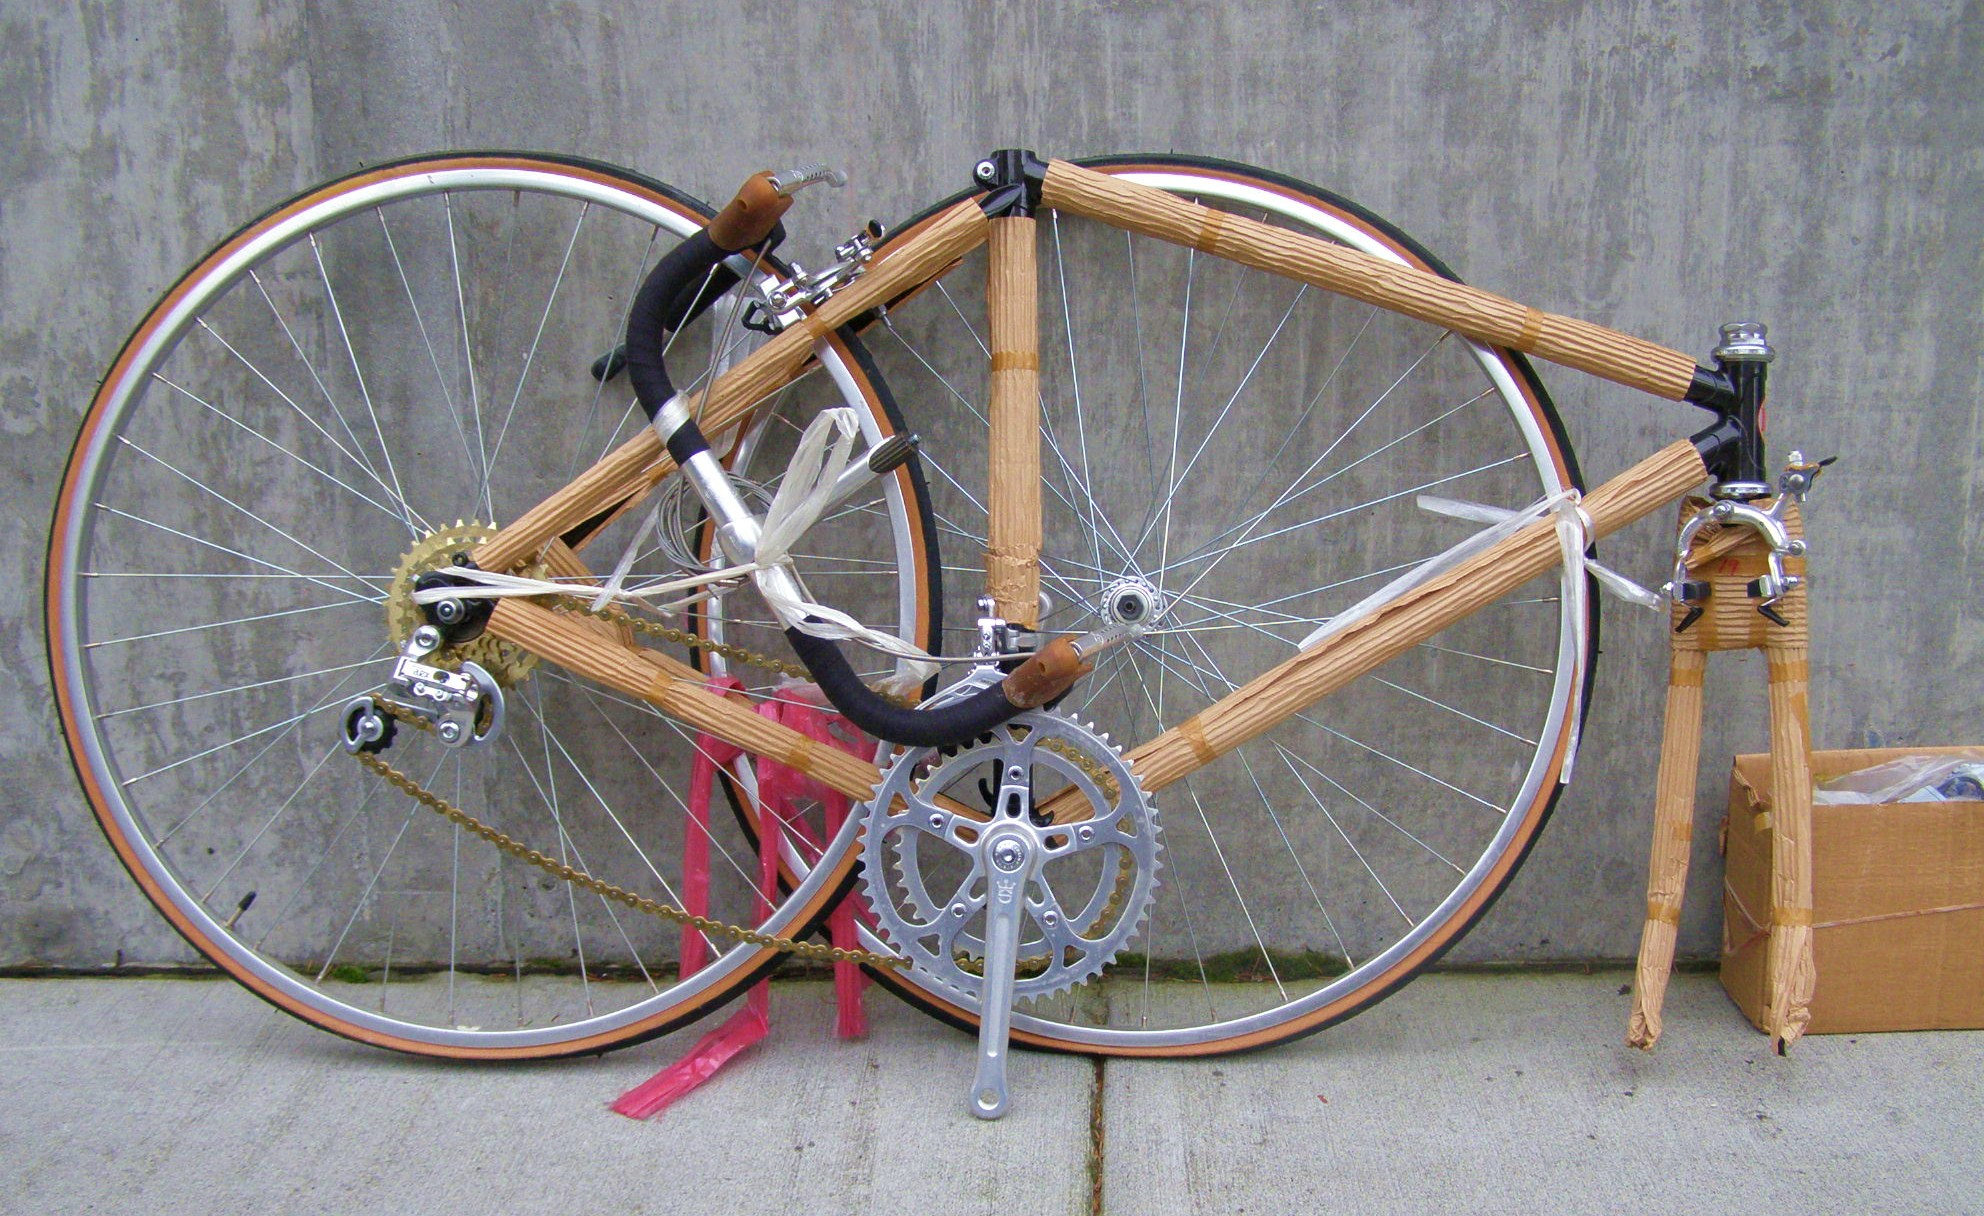 1983 Kobe Limited Japanese Road Bike Classic Cycle Bainbridge